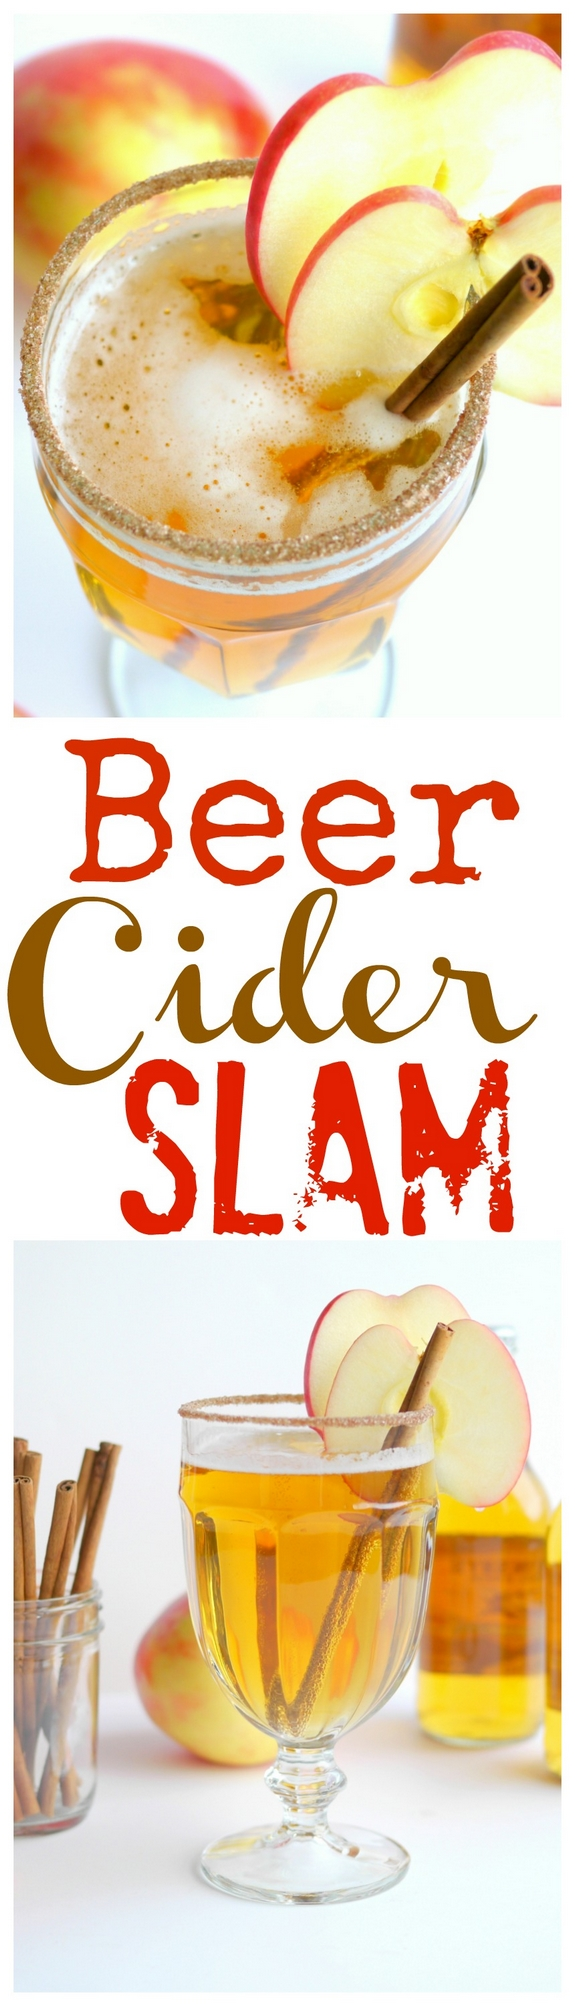 Beer Cider Slam for March Madness or any occasion you are celebrating